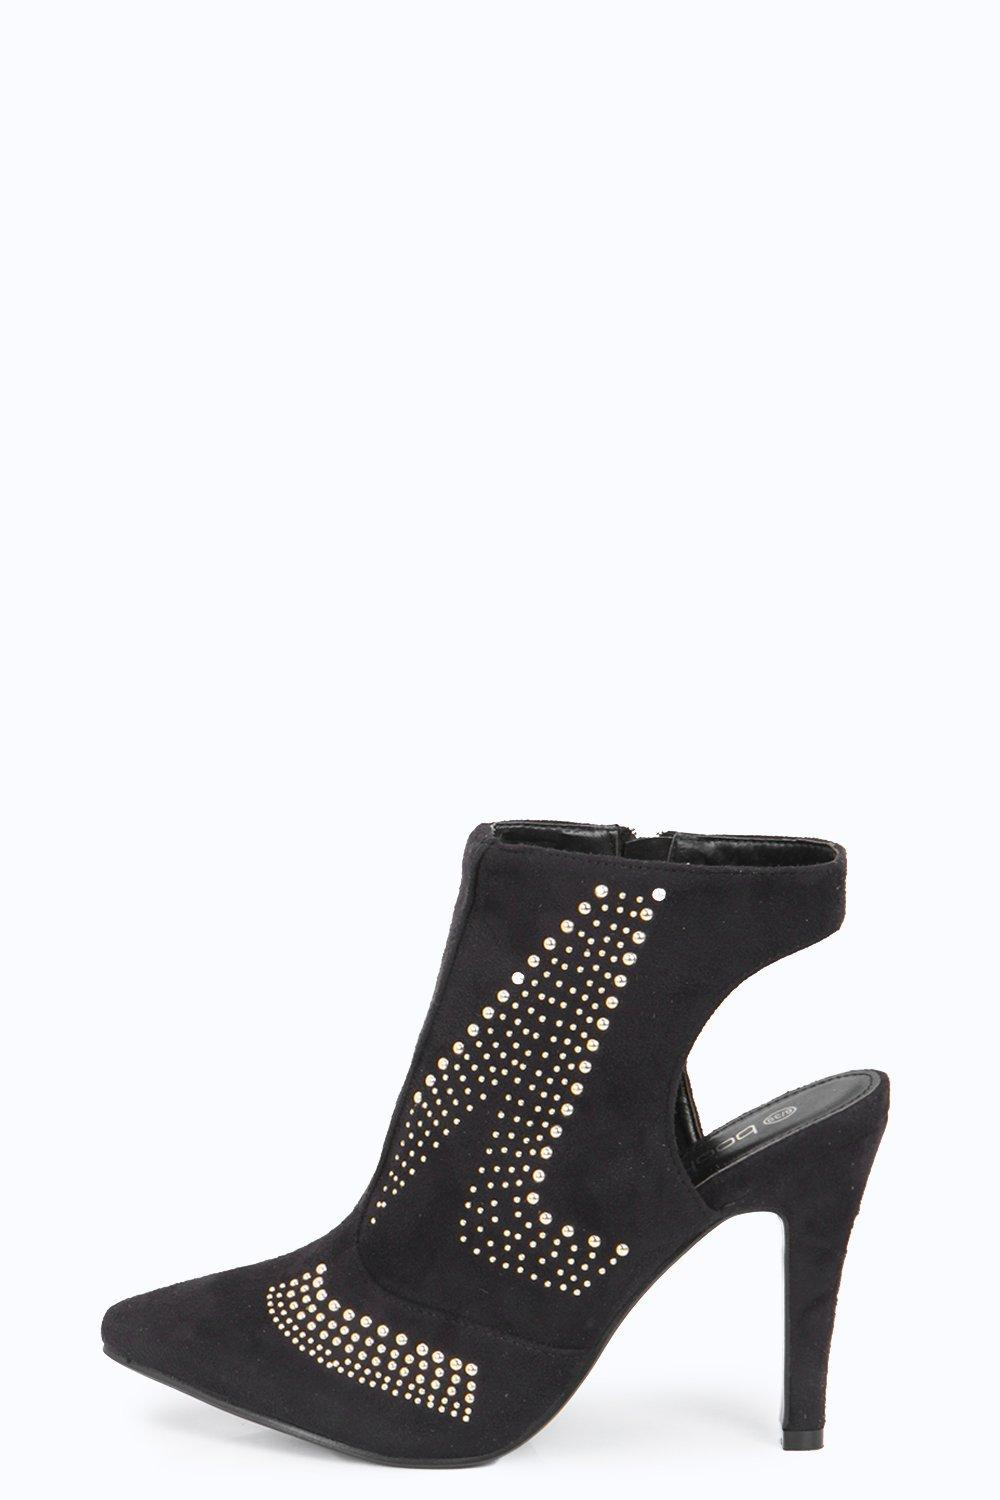 Joanna Pin Stud Detail Shoe Boot